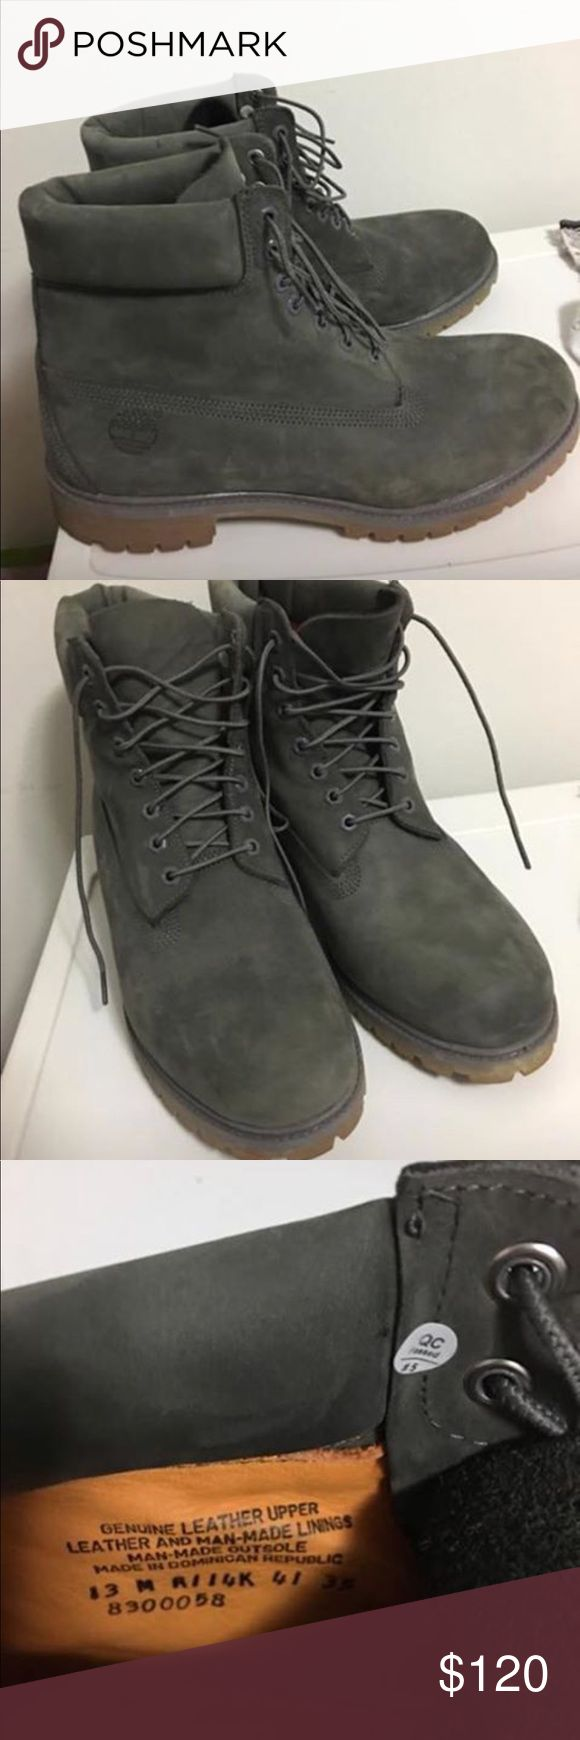 Timberland Boots New timberland boots size 13! Timberland Shoes Boots